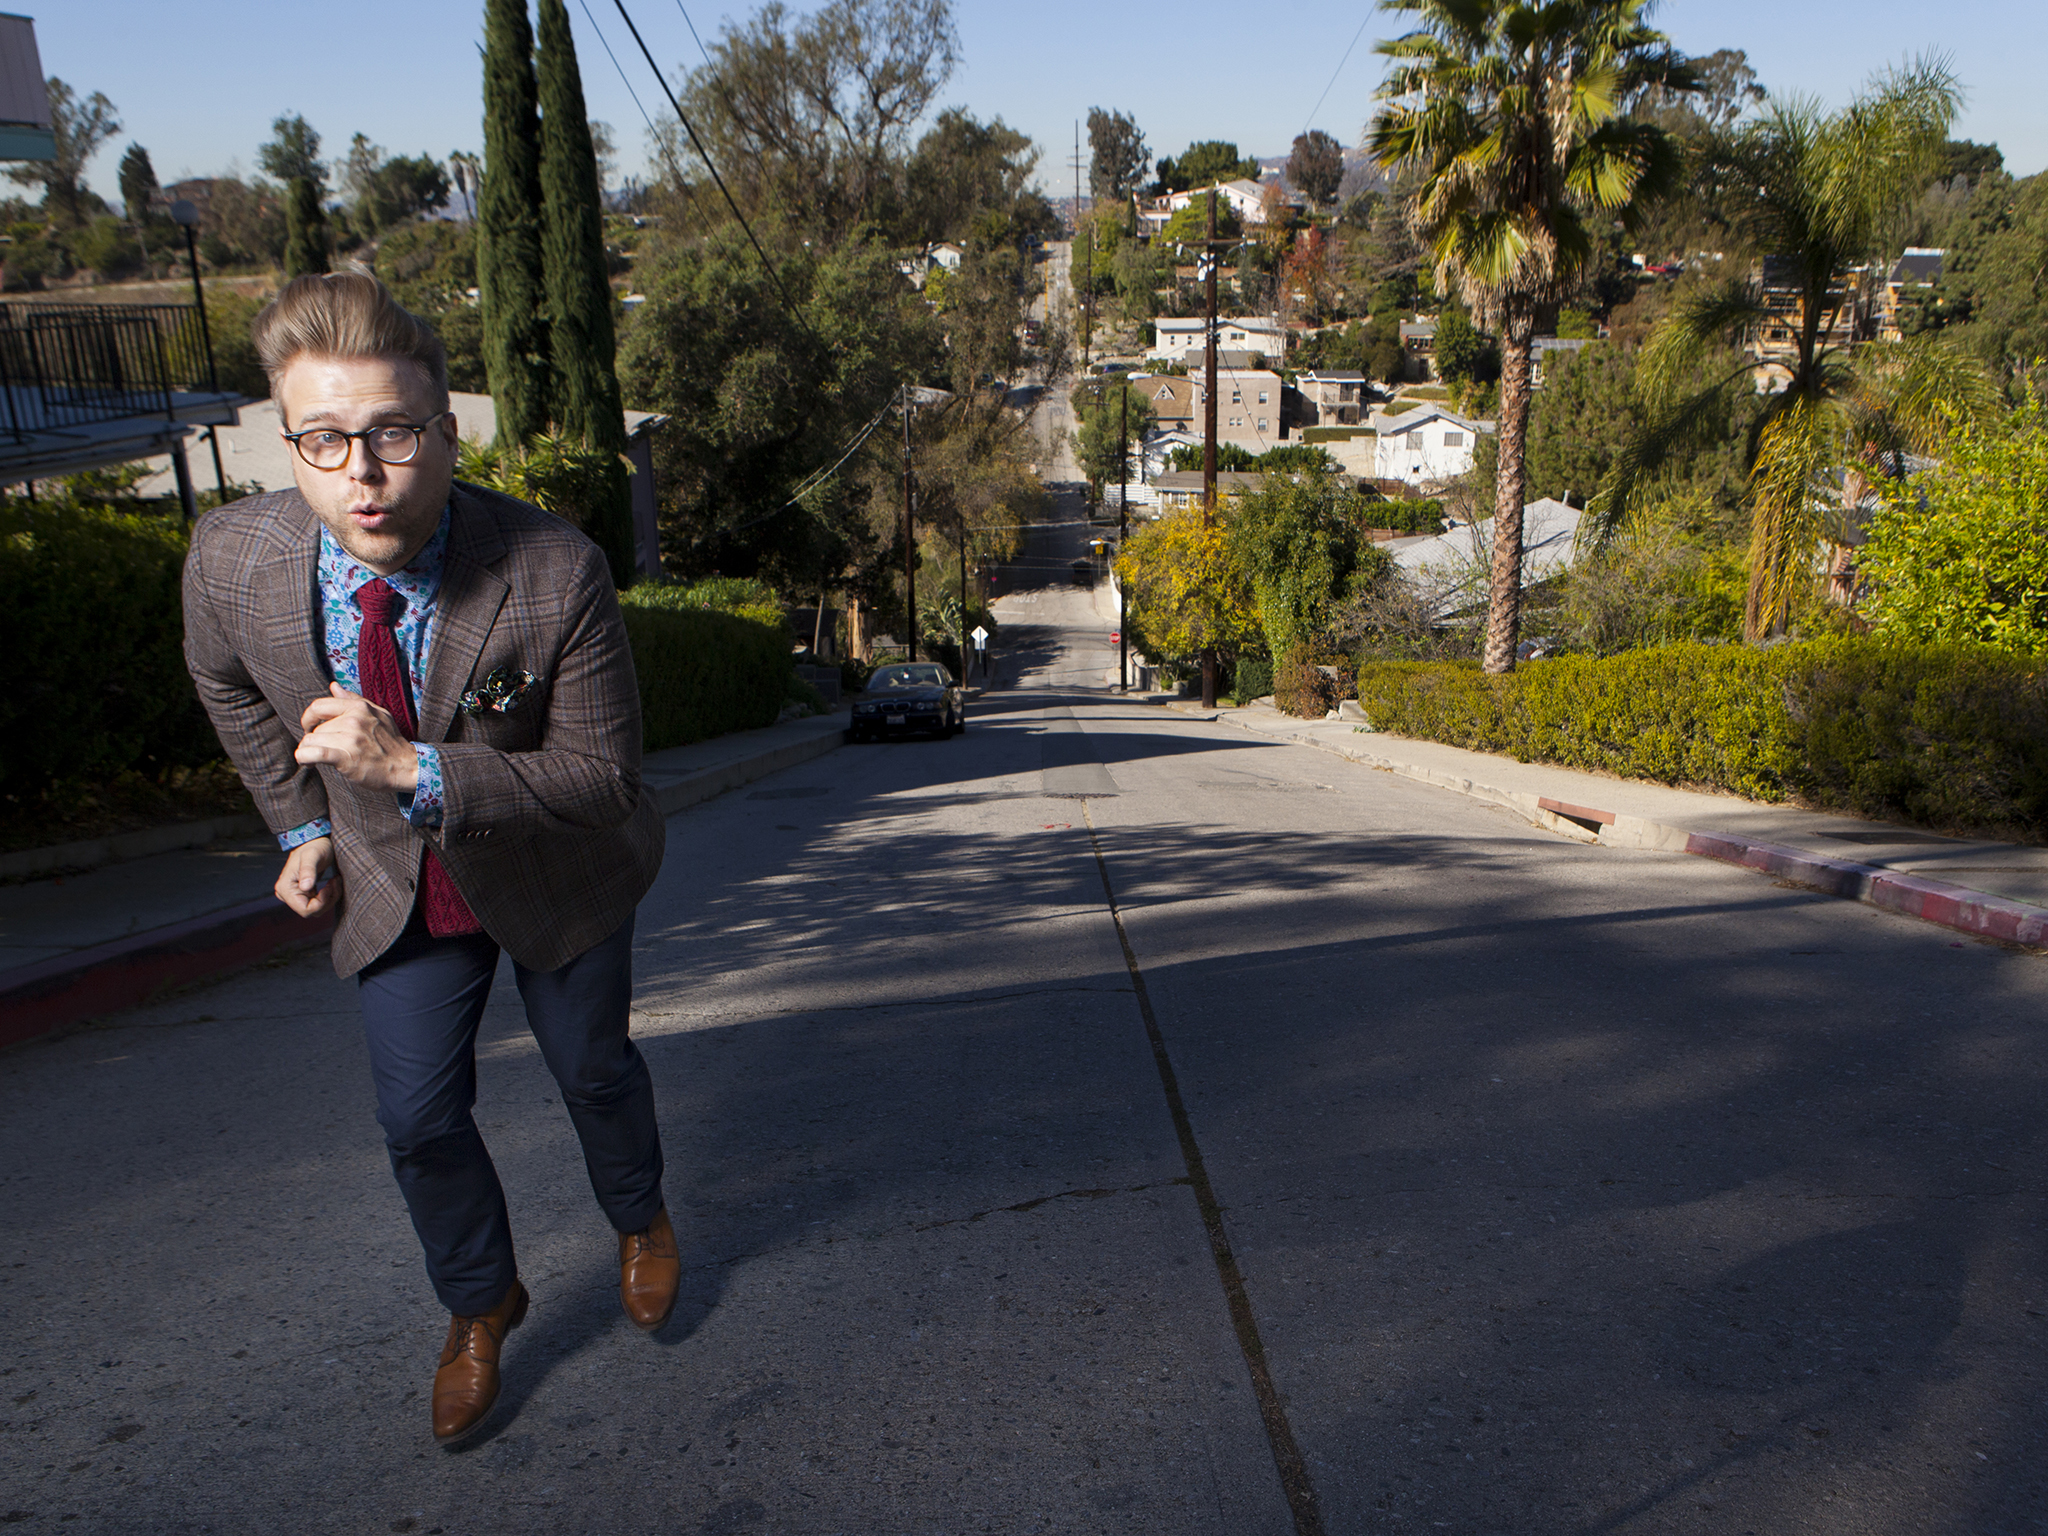 Adam Conover, Comedians to watch in 2016